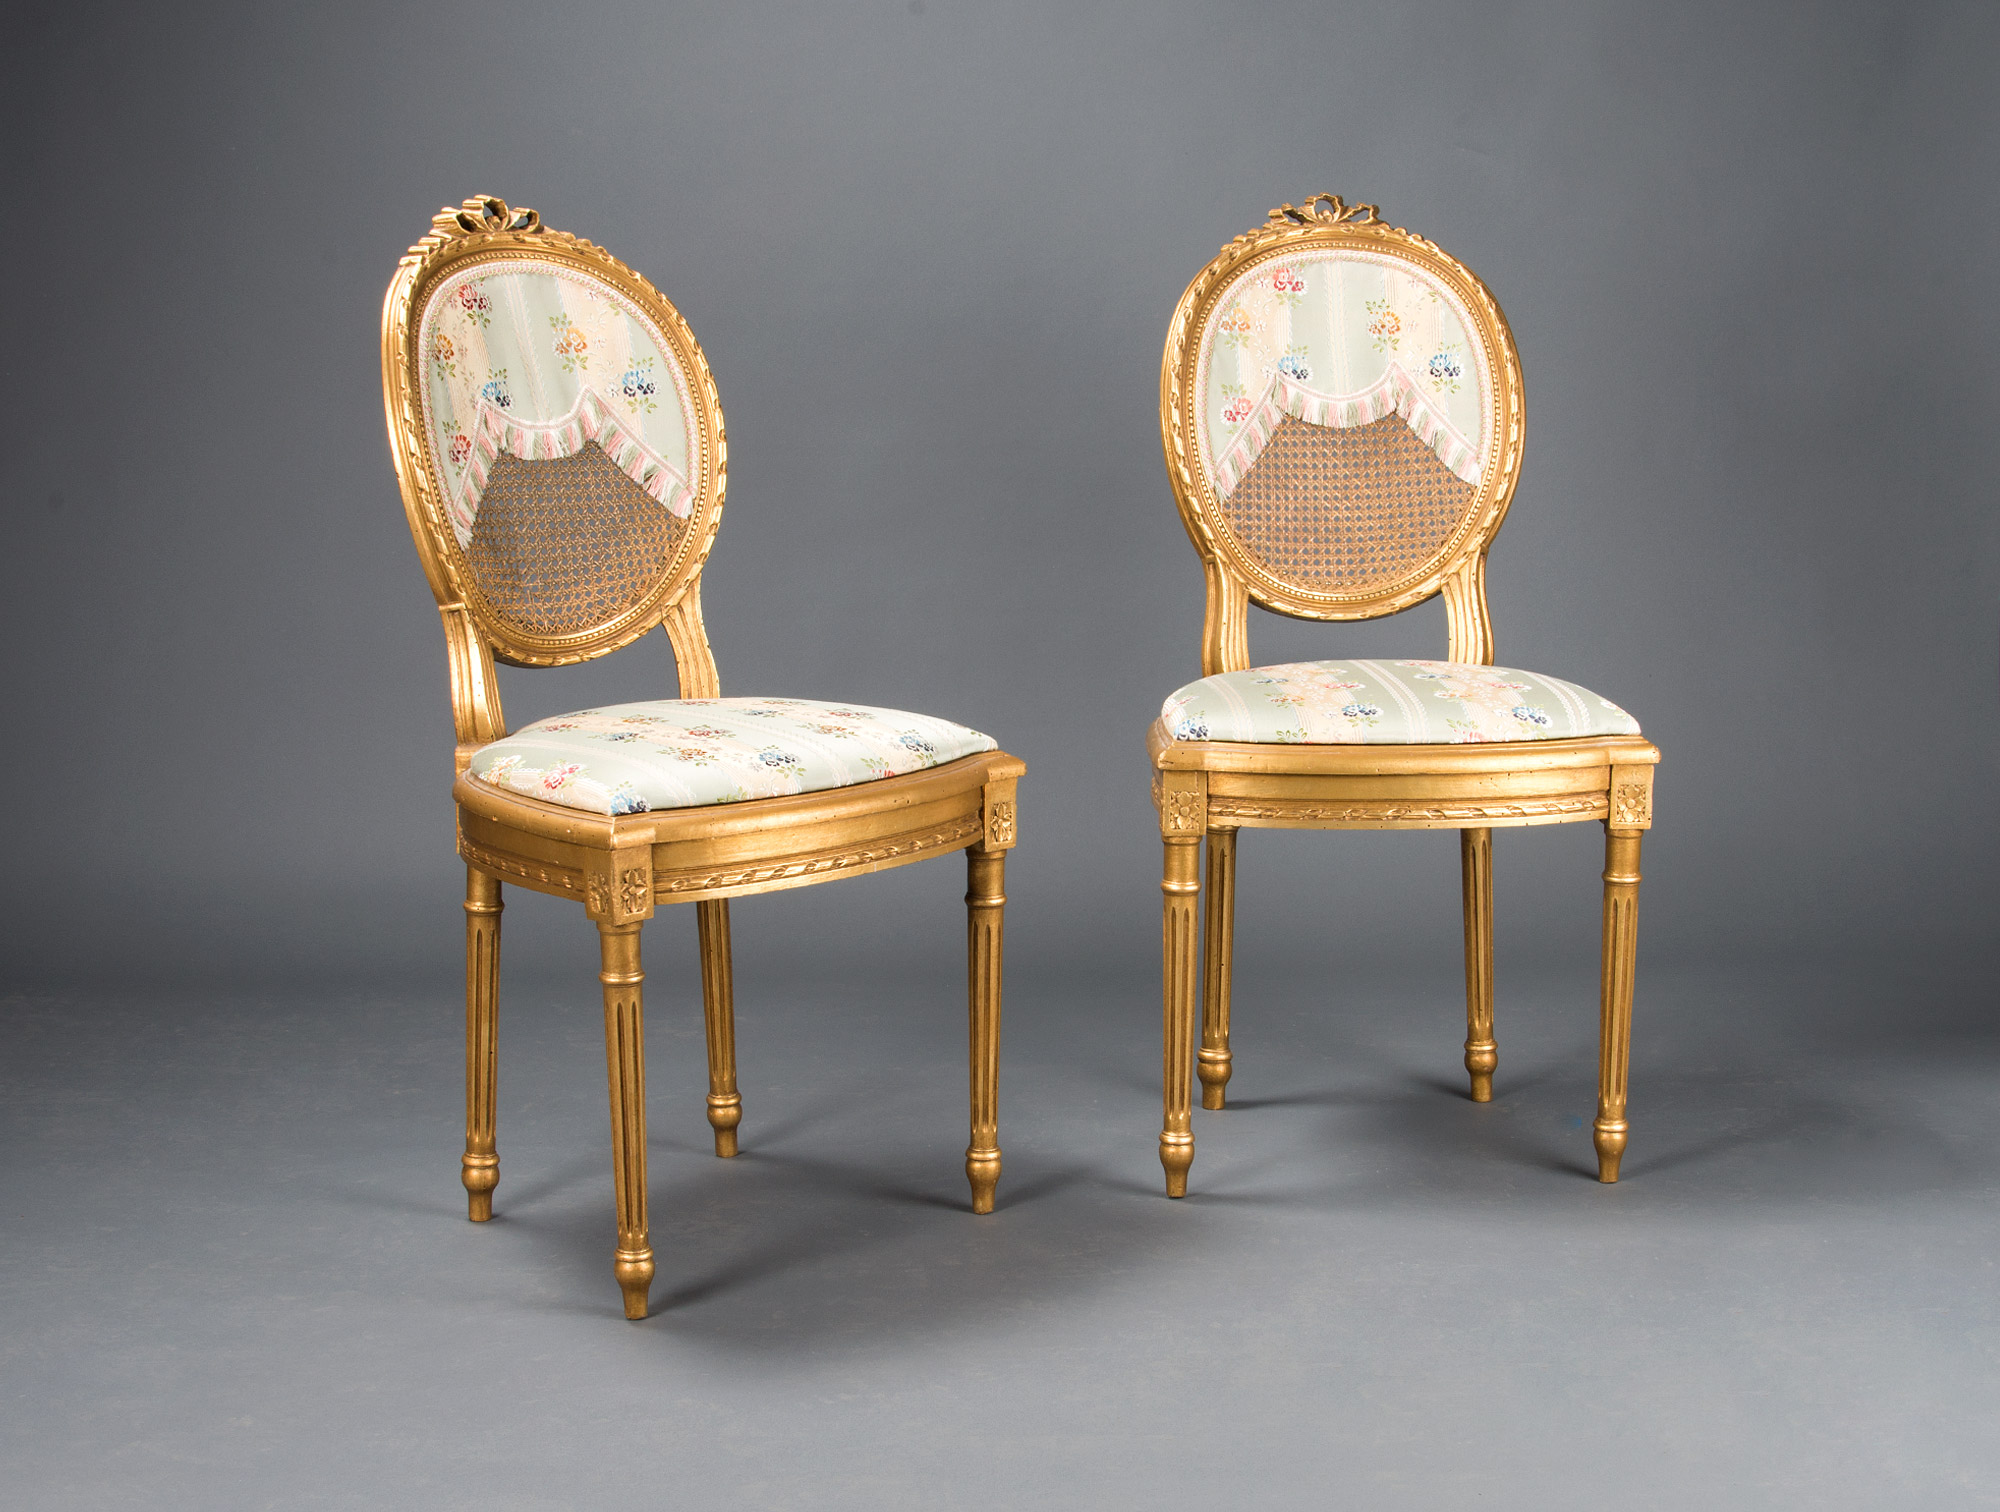 Pair of Louis XVI style chairs Soubrier - Rent Seats Chair XVIIIth